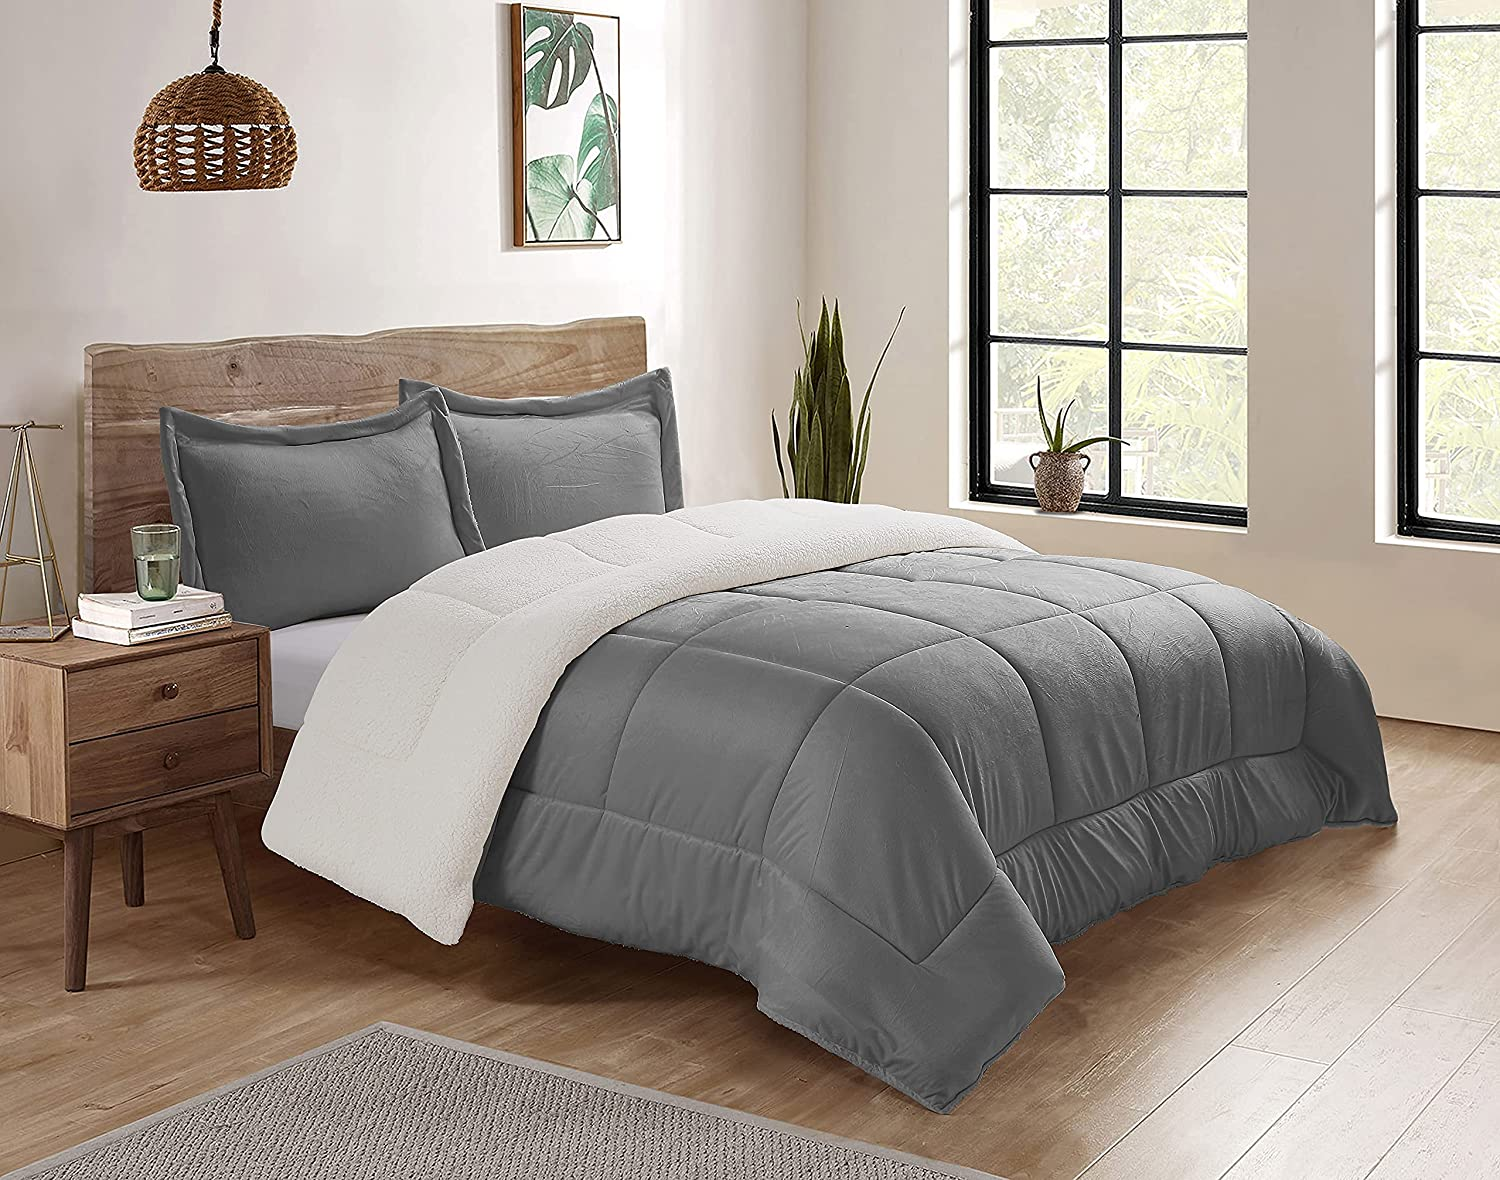 Swift Home shop Collection Ultra-Plush Reversible Micromink and Sherp Max 73% OFF